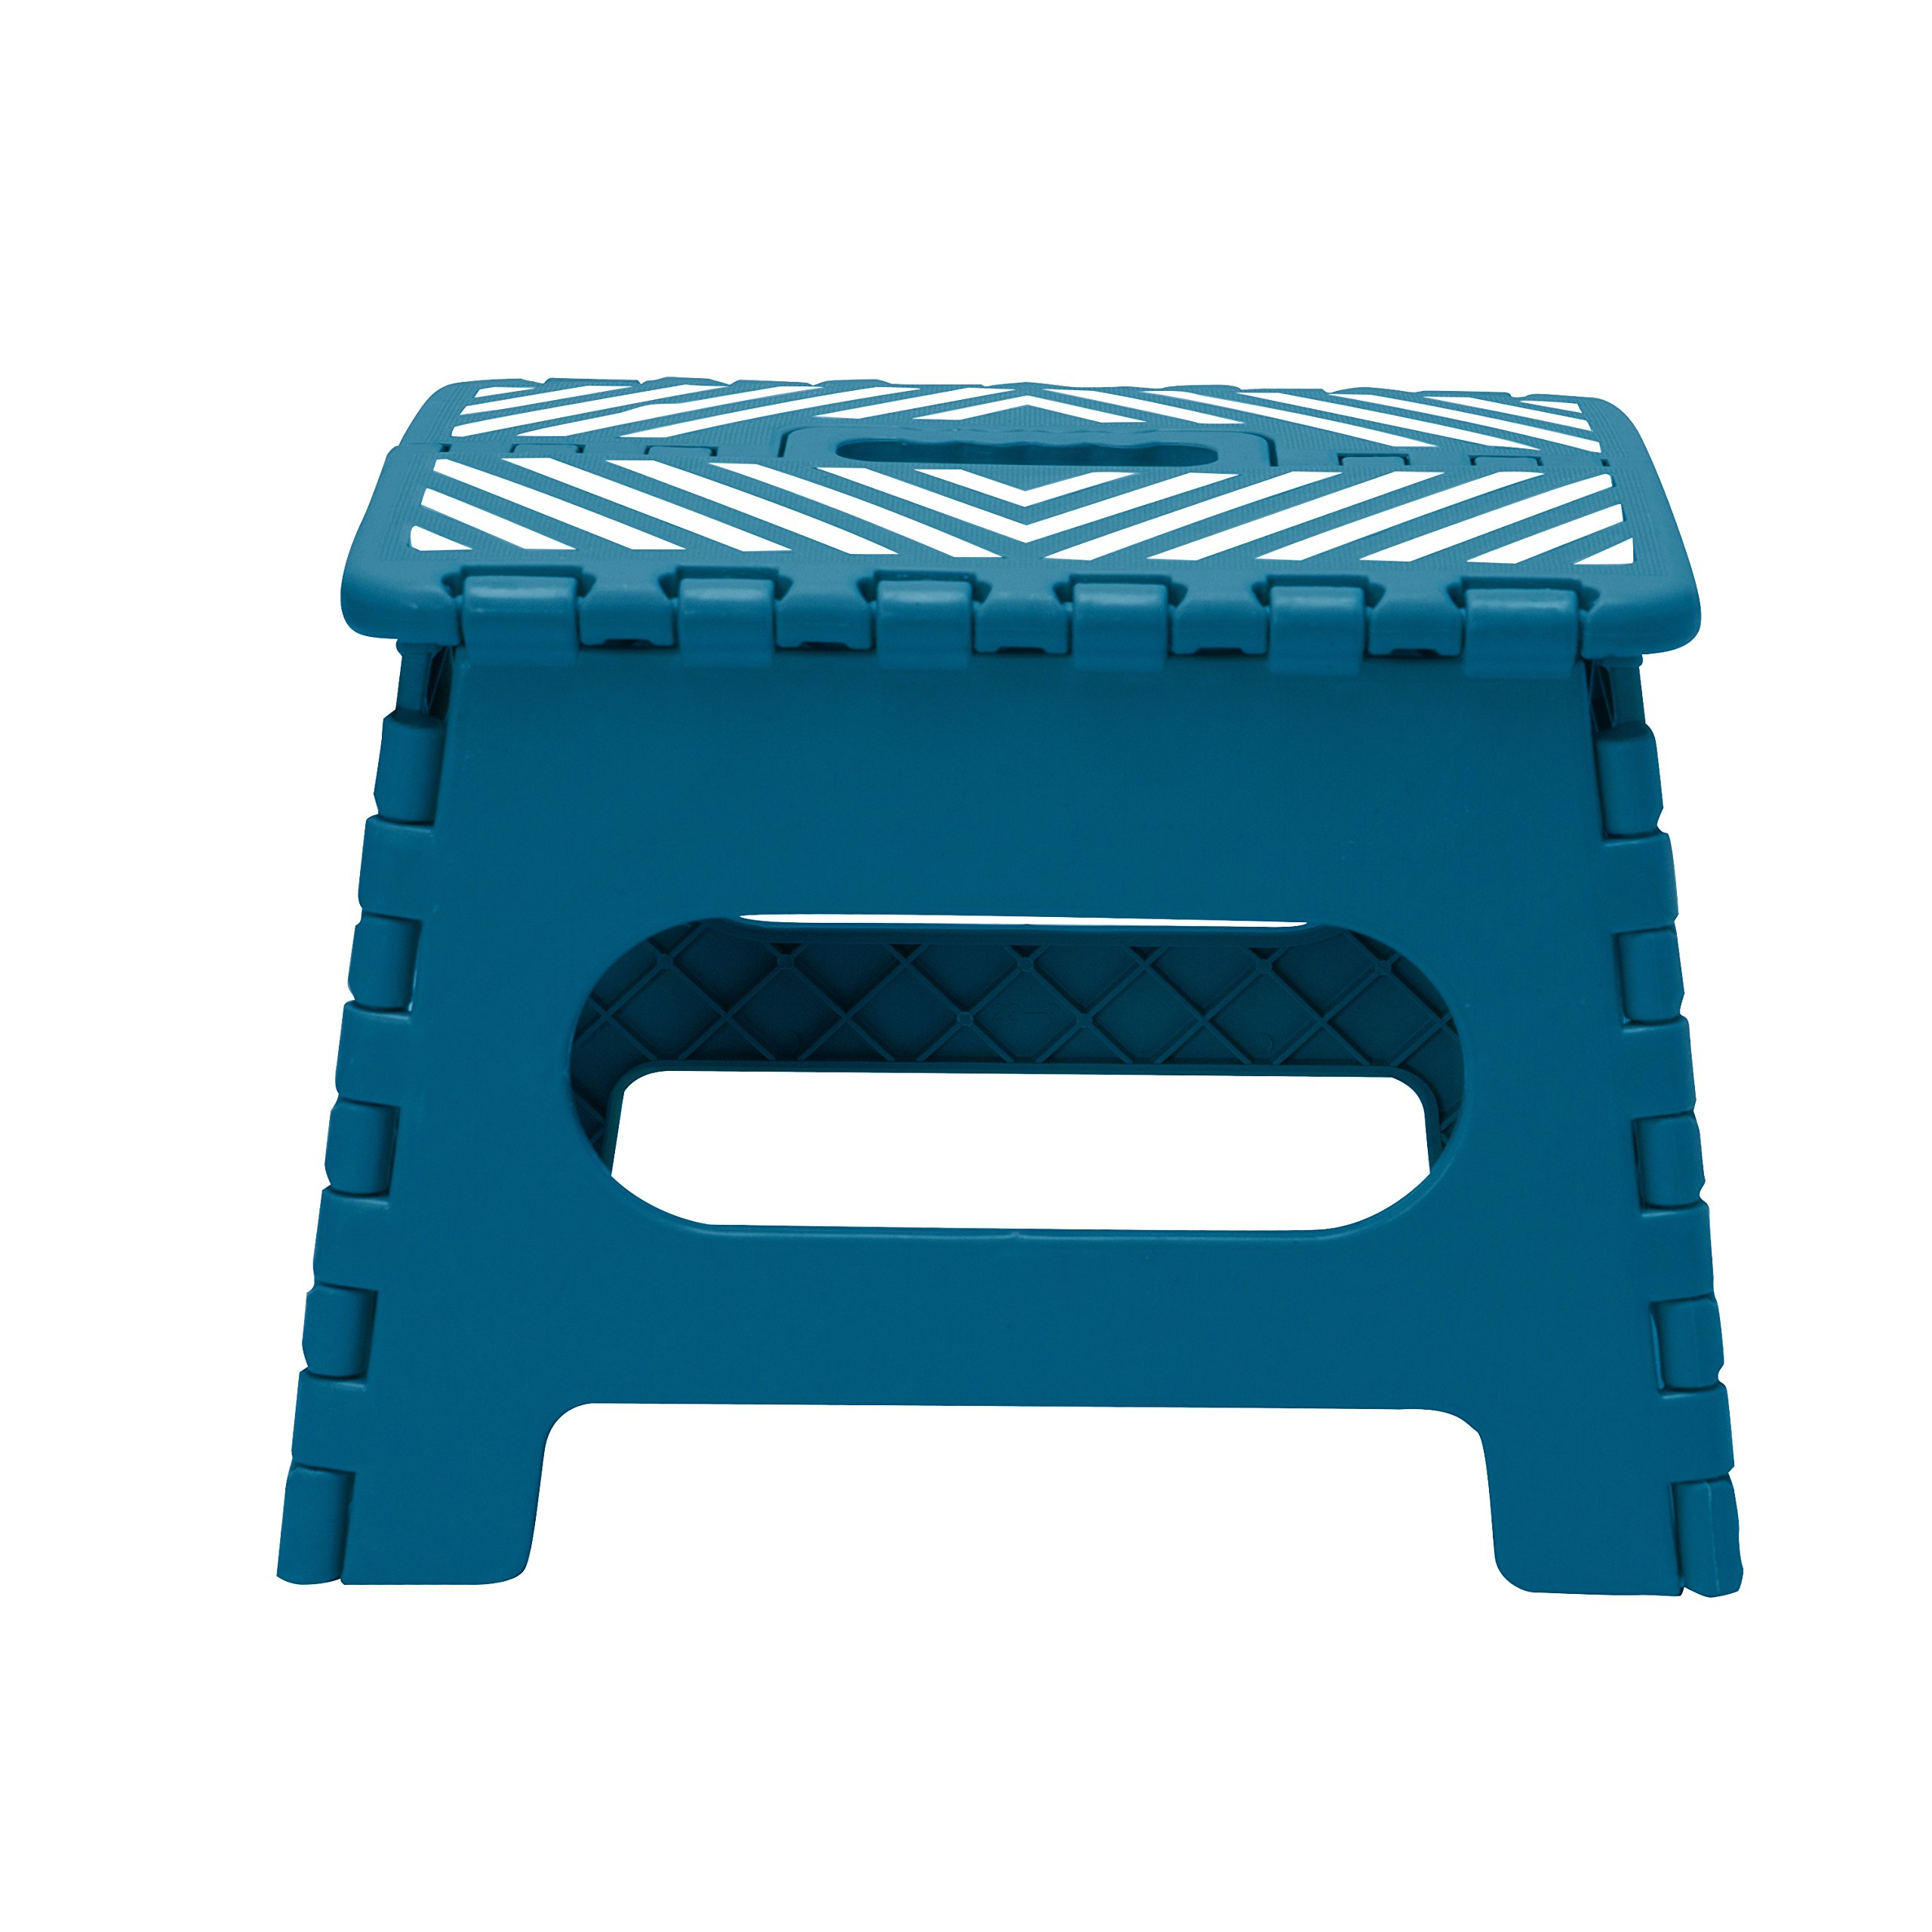 Simplify 23650-SAPPHI Folding Step Stool-Lightweight, Sturdy and Safe, Carrying Handle, Easy to Open, for Kitchen, Bathroom, Bedroom, Kids or Adults, 1 Pack, Sapphire Blue